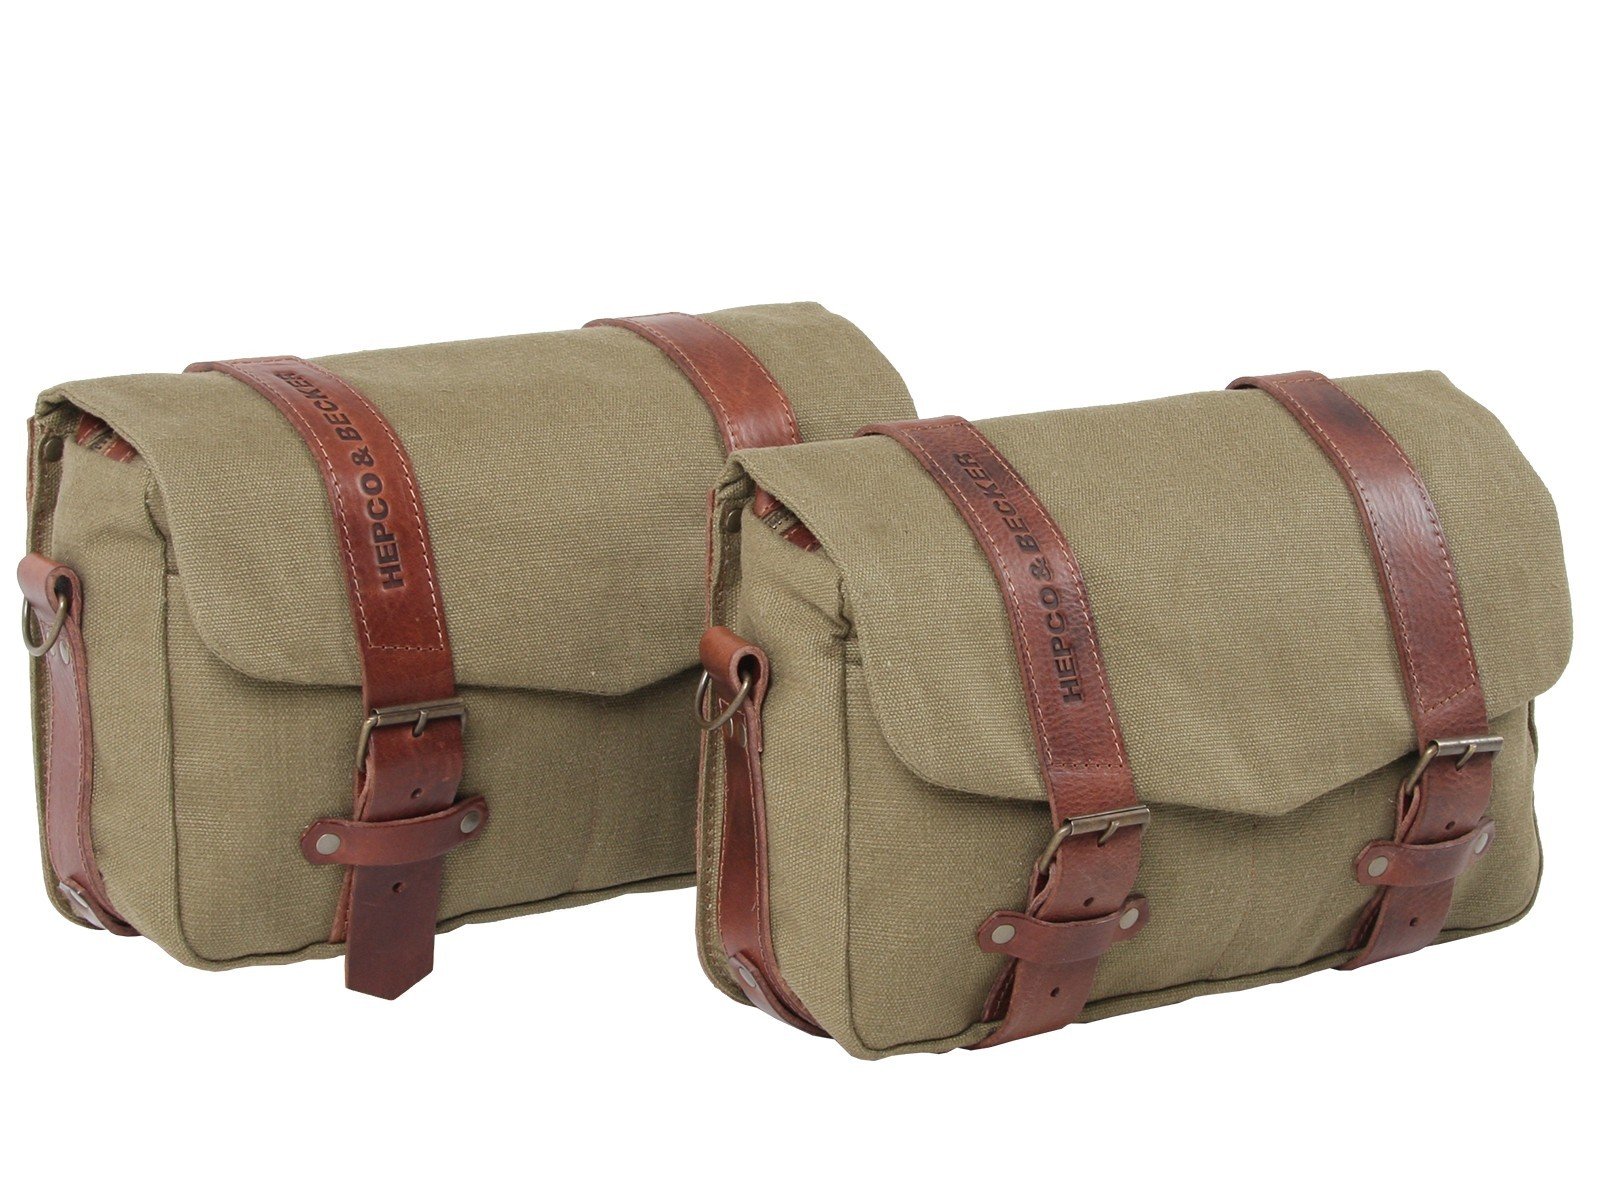 Hepco & Becker Legacy Courier Bag Set (Medium Pair) for C-Bow Carrier - Green